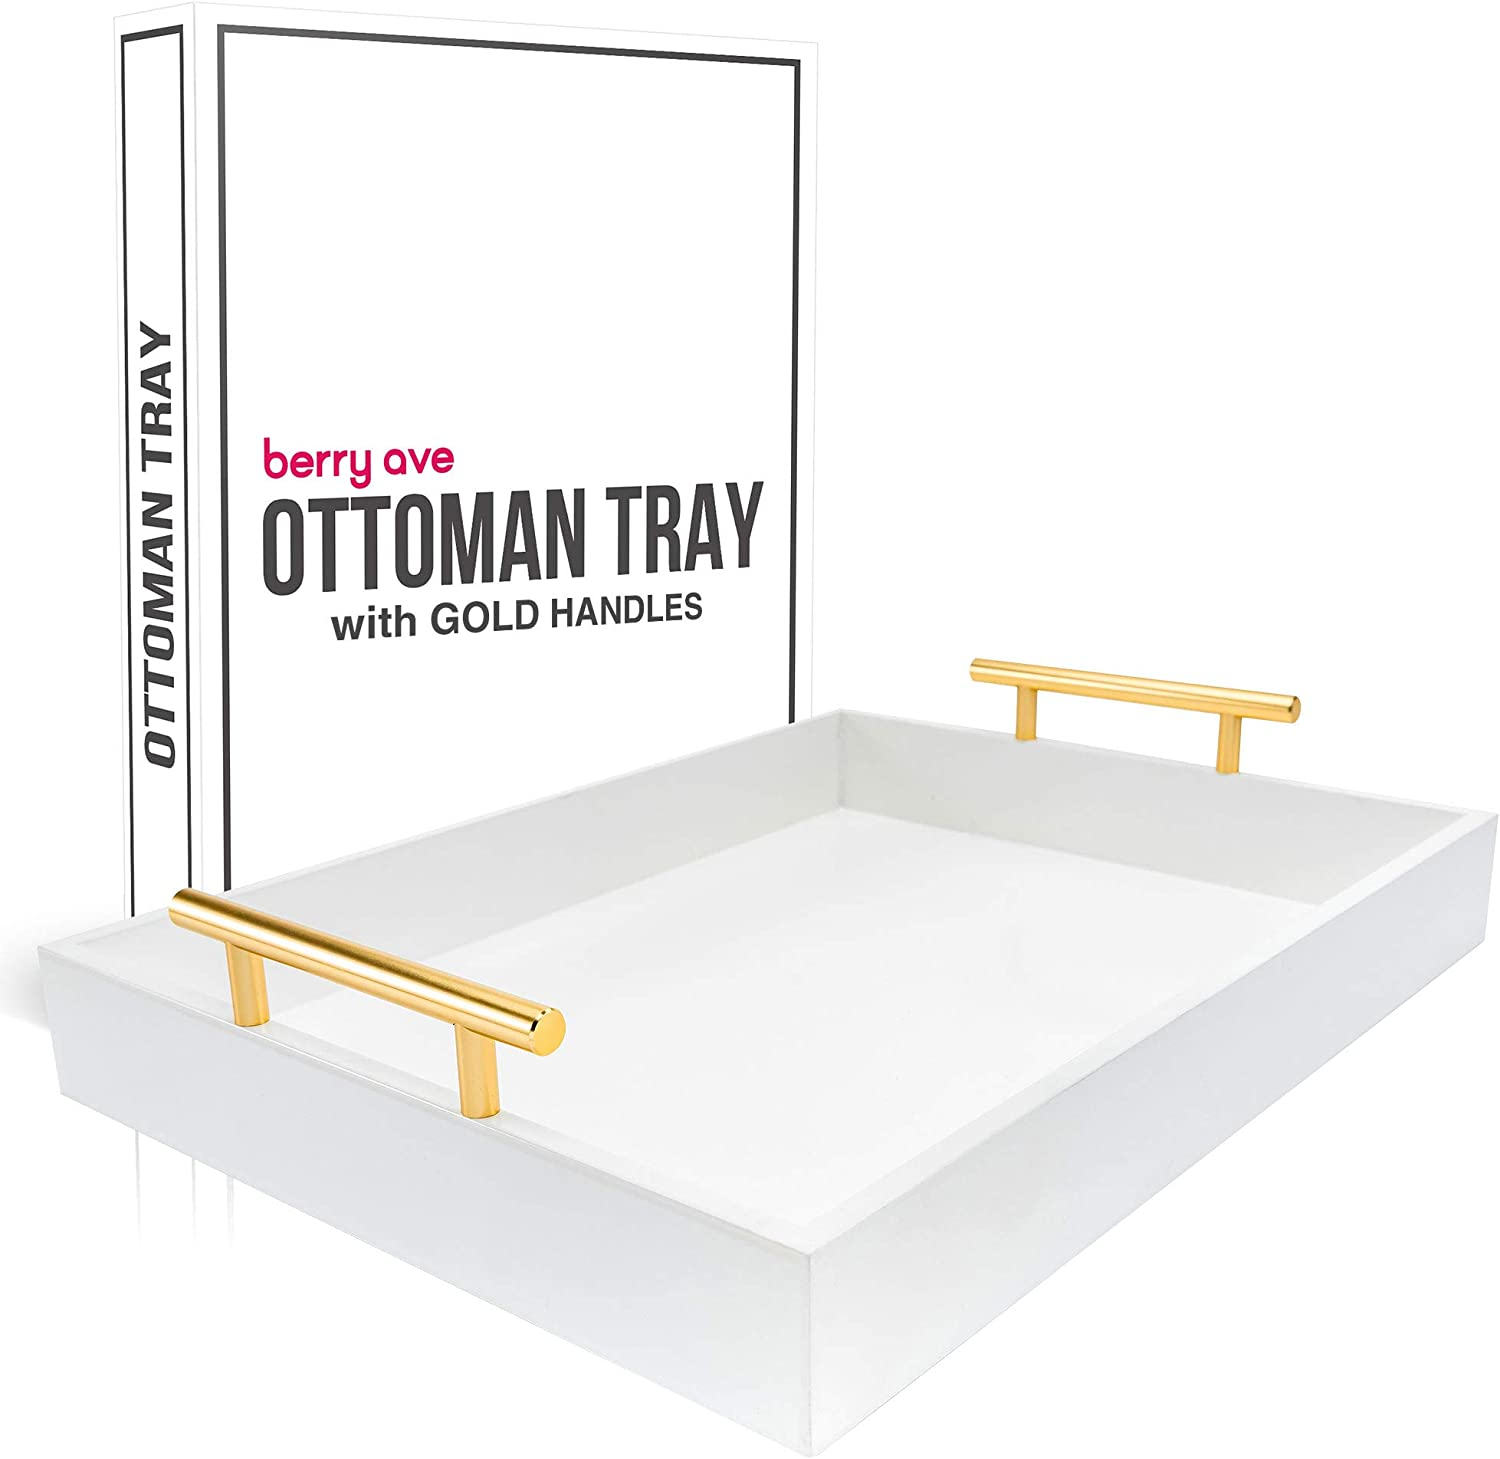 Premium Ottoman Tray- Chic Decorative Rectangular Serving Tray With Glossy Finish & Polished Metal Handles- Modern & Practical Coffee Table Tray- Perfect For Ottoman, Console, Side Table- White, Gold